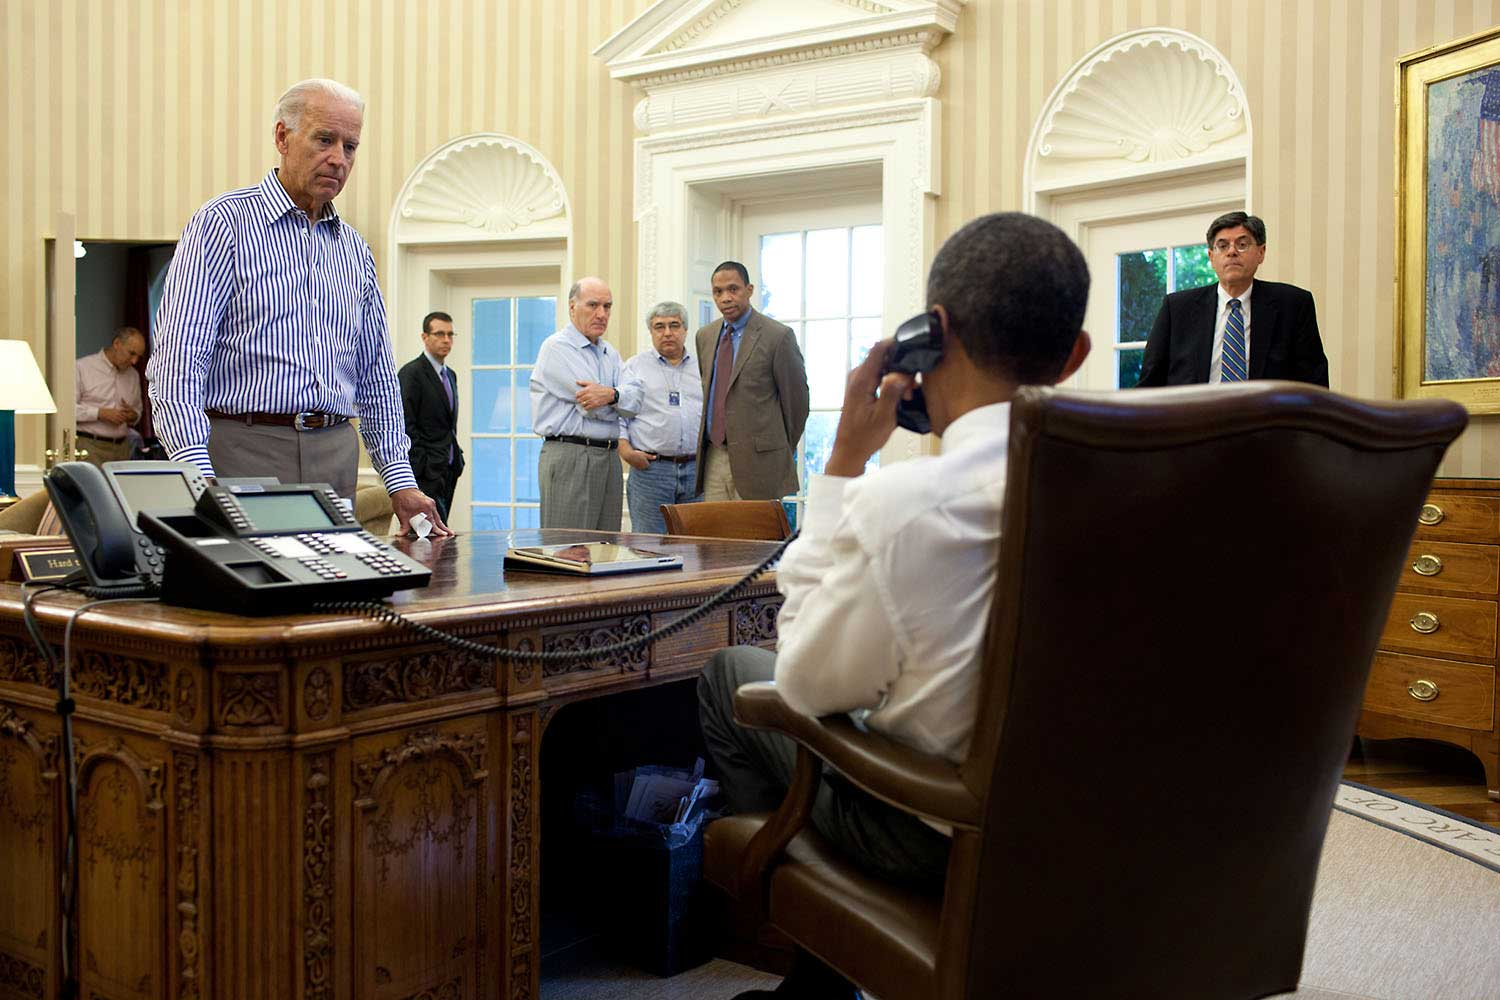 The Vice President and other staff watch and listen as the President talks on the phone in the Oval Office with Senate Majority Leader Harry Reid during the debt limit and deficit discussions, July 31, 2011.